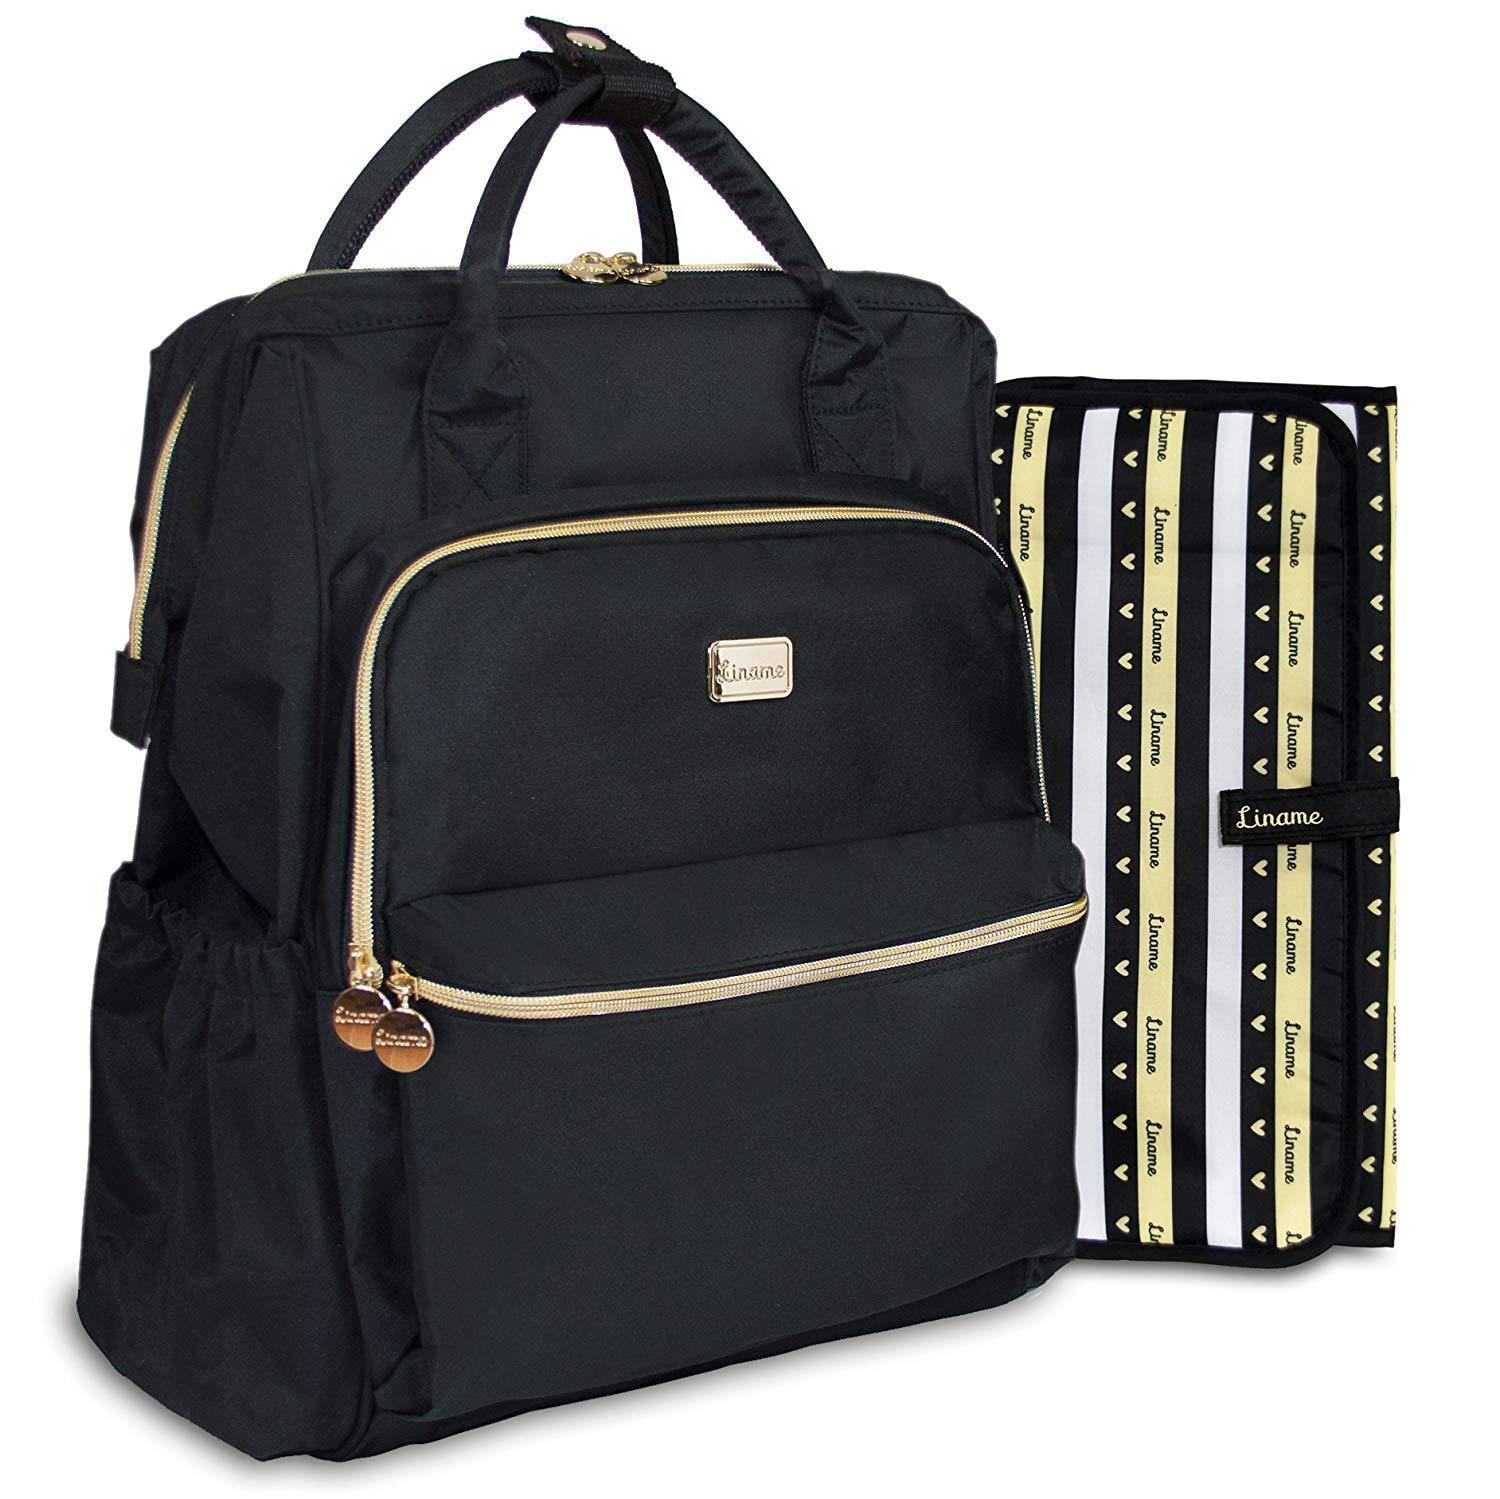 Premium Black Diaper Bag Backpack By Liname With Stroller